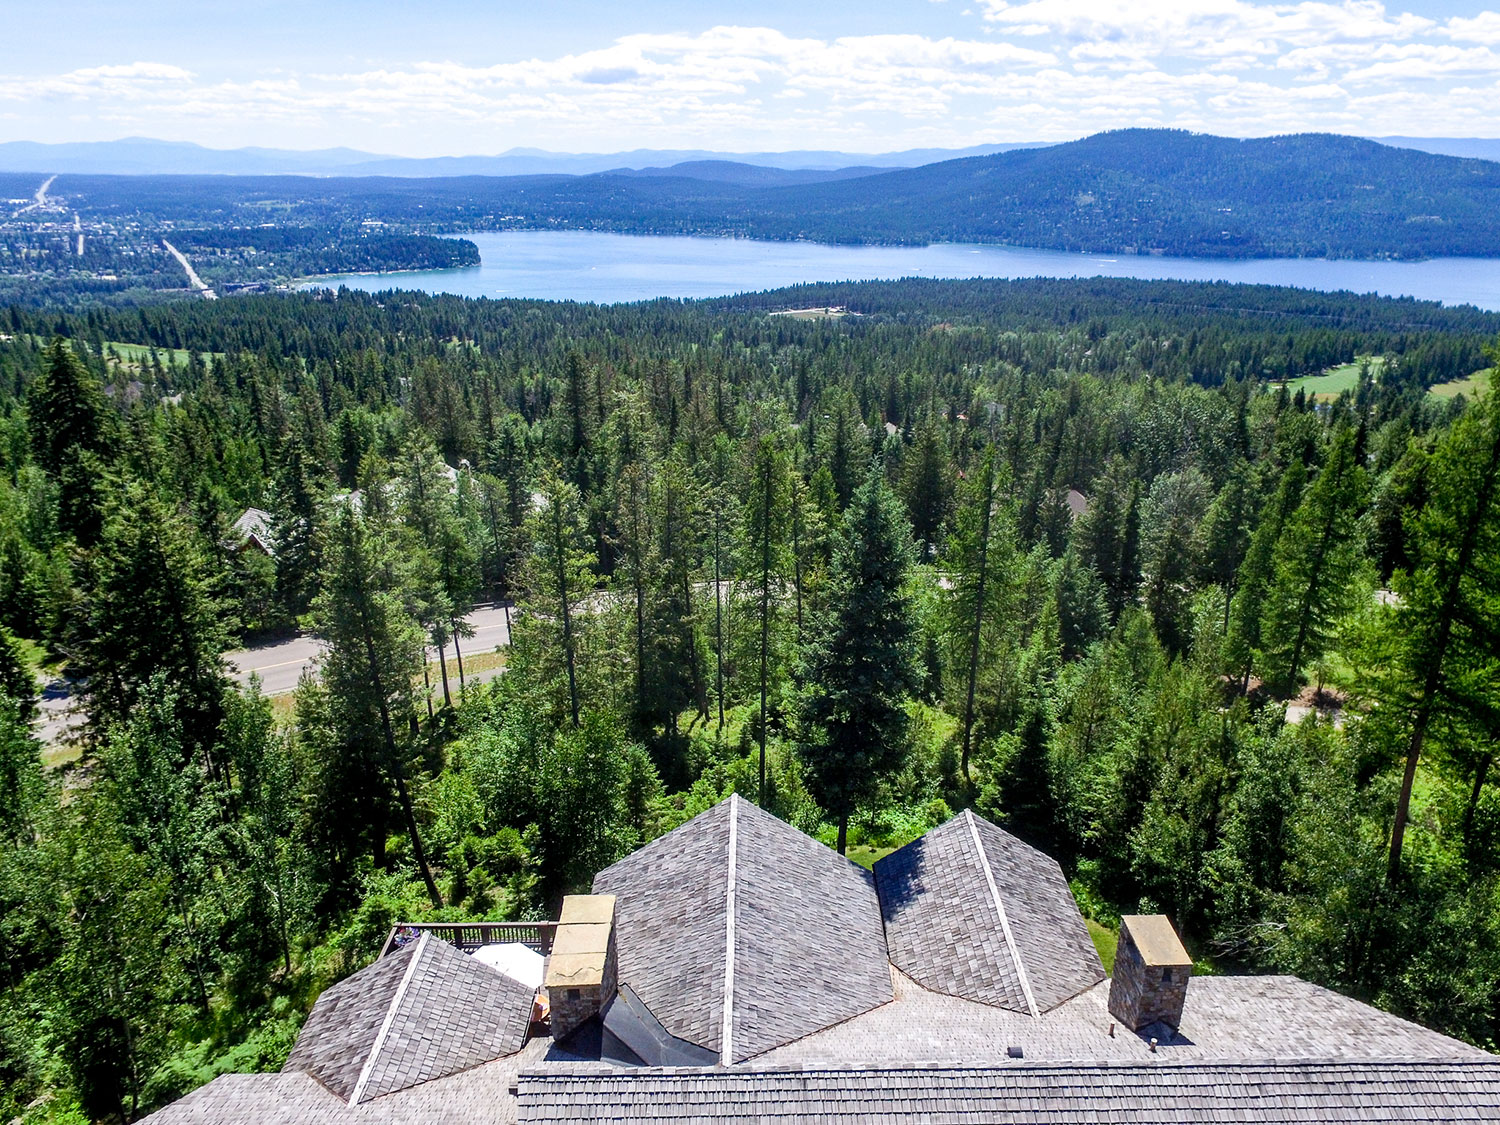 Glacier National Park, Whitefish Lake, and millions of acres of pristine wilderness are the magnificent backdrop to this 3.4-acre estate in Big Sky Country.